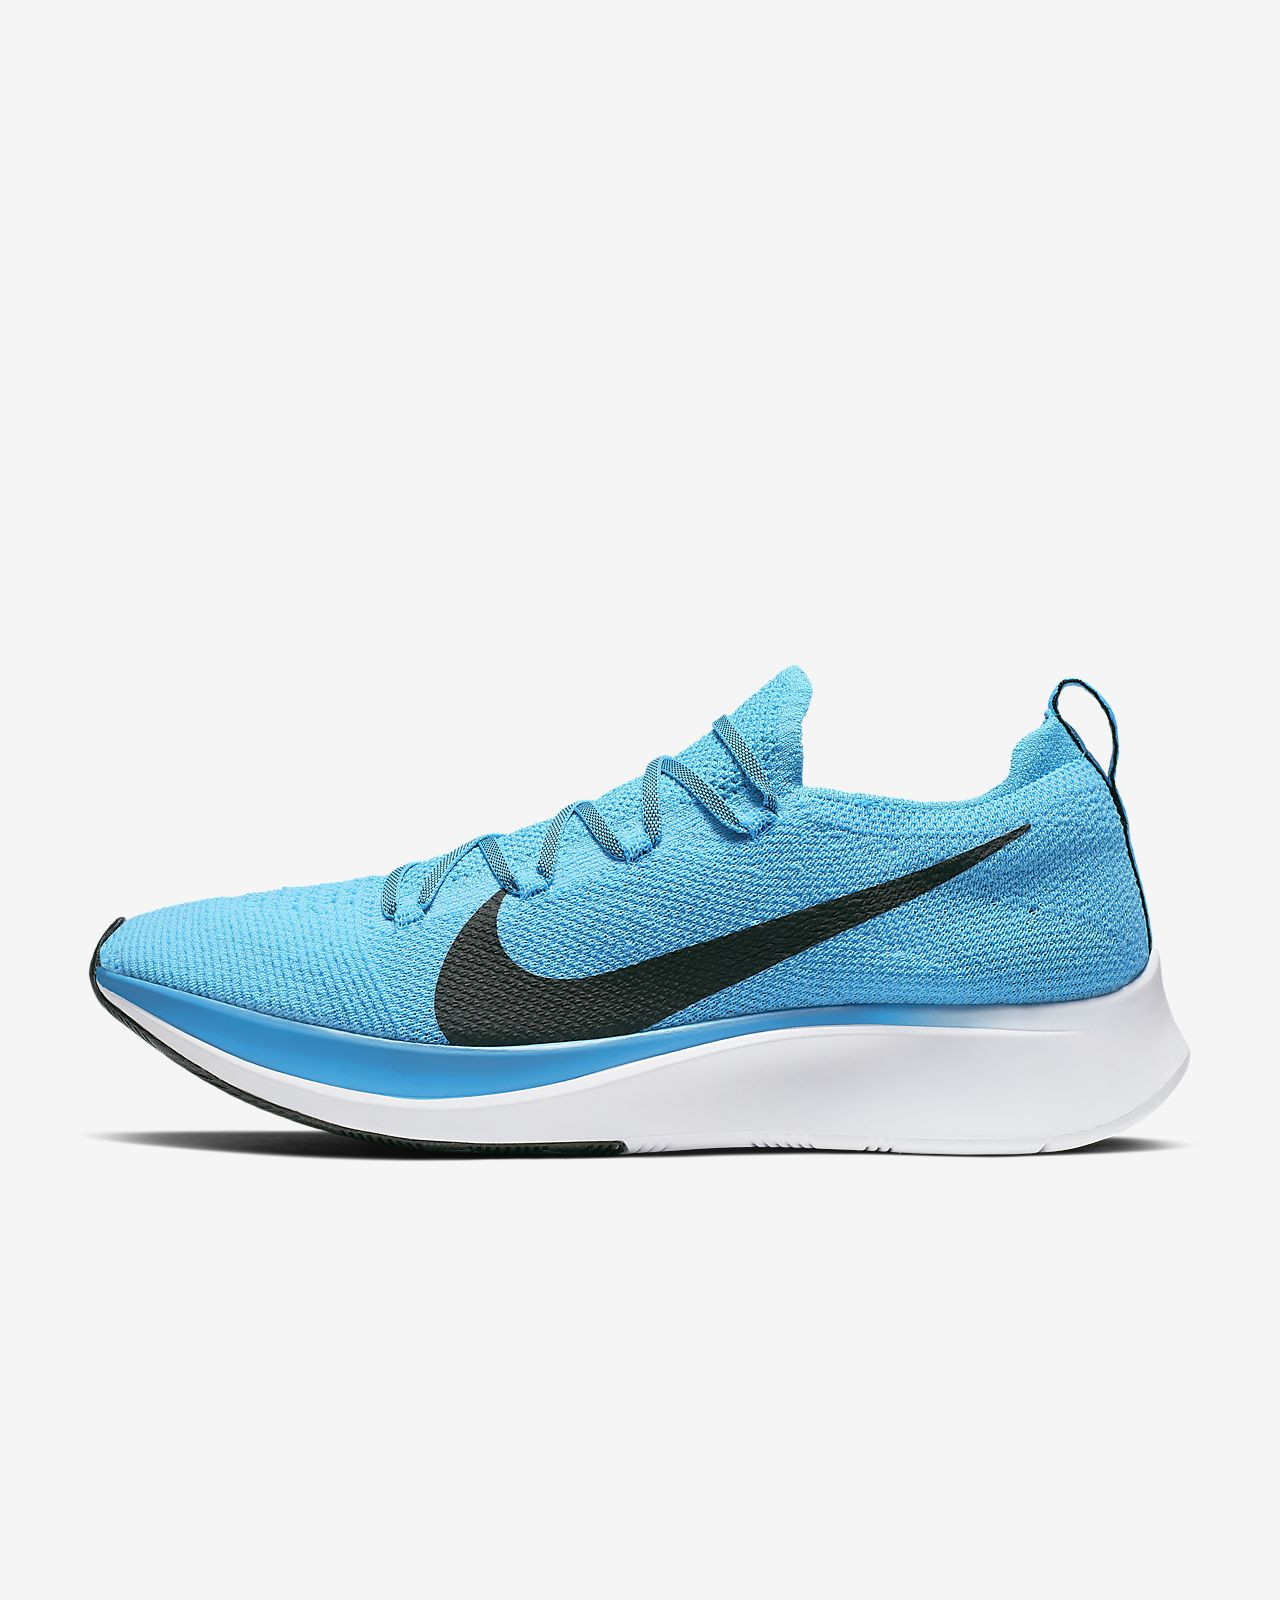 Nike Zoom Fly Flyknit Men's Running Shoe. Nike SG